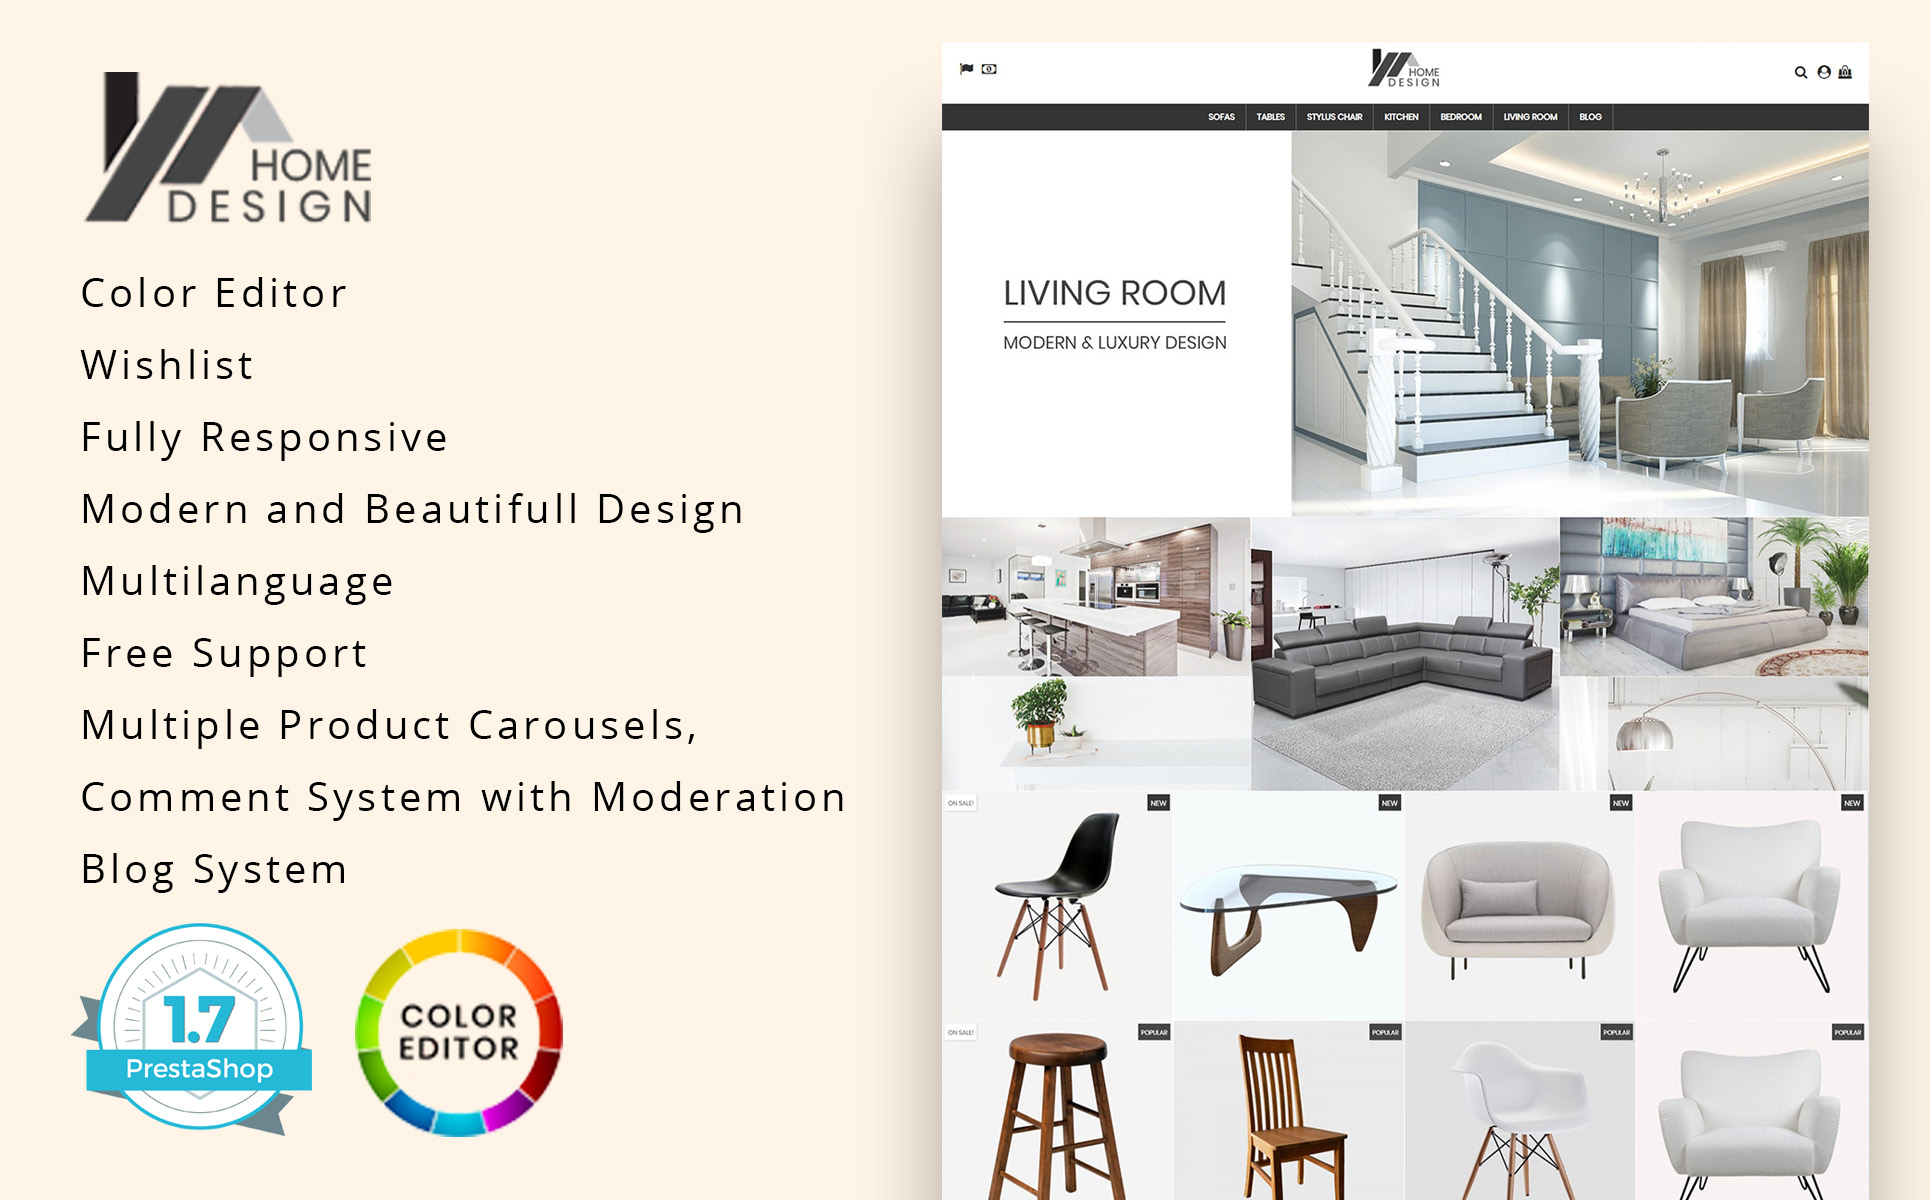 Home Design PrestaShop Theme